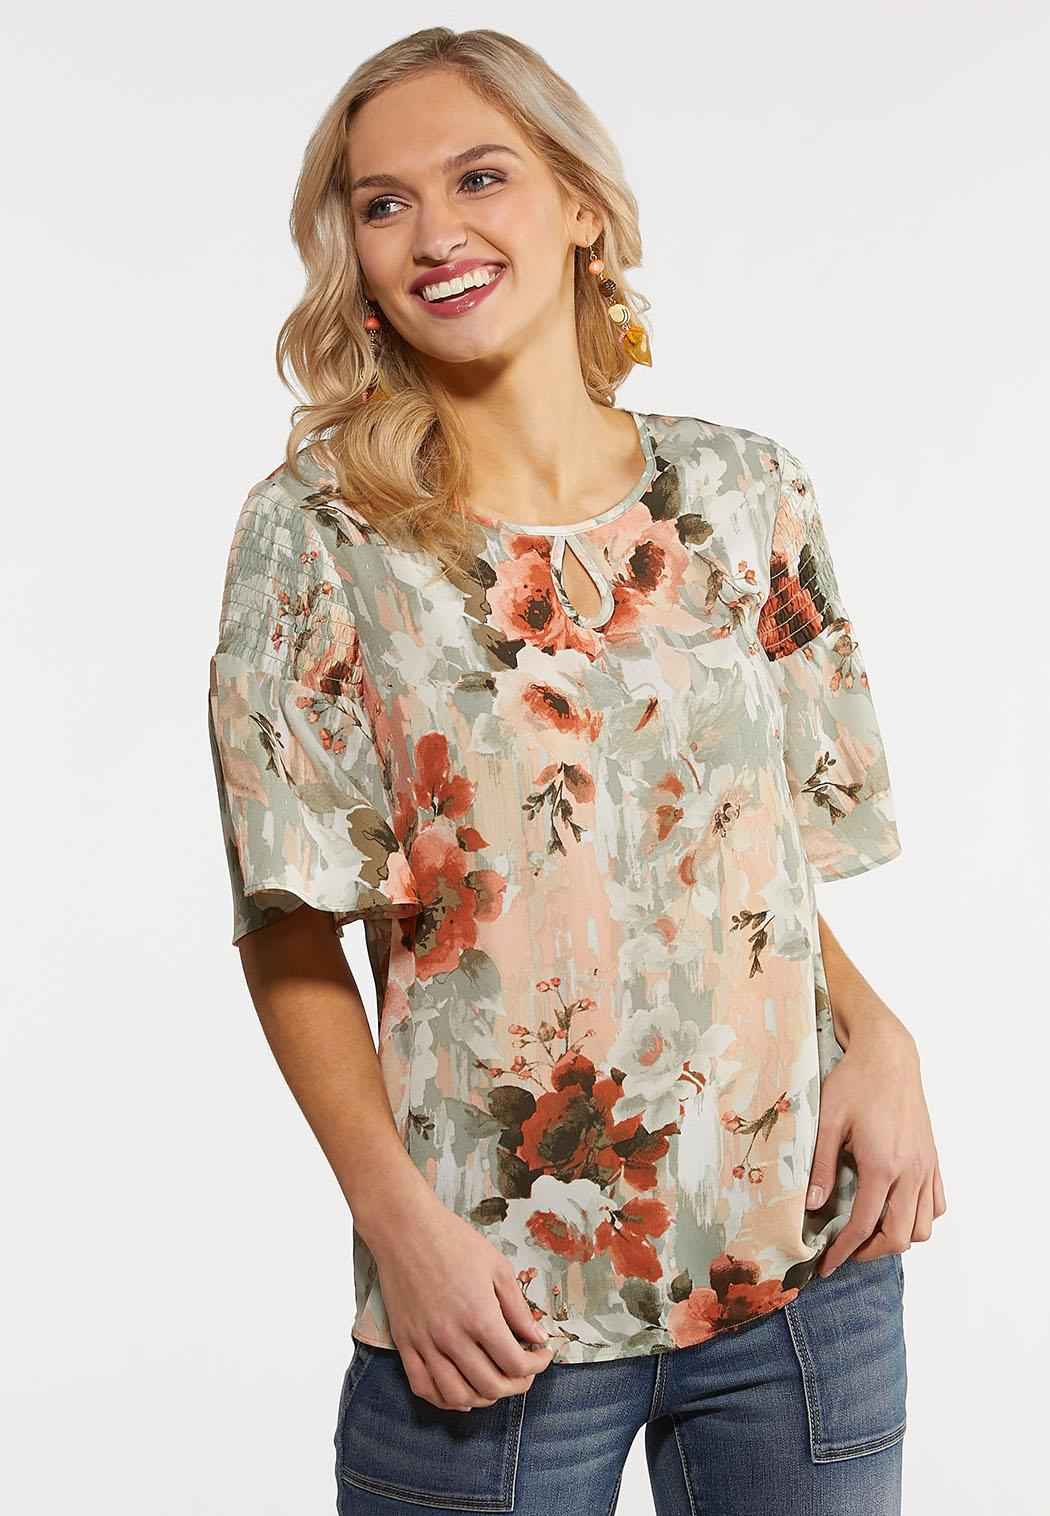 Enchanted Floral Top